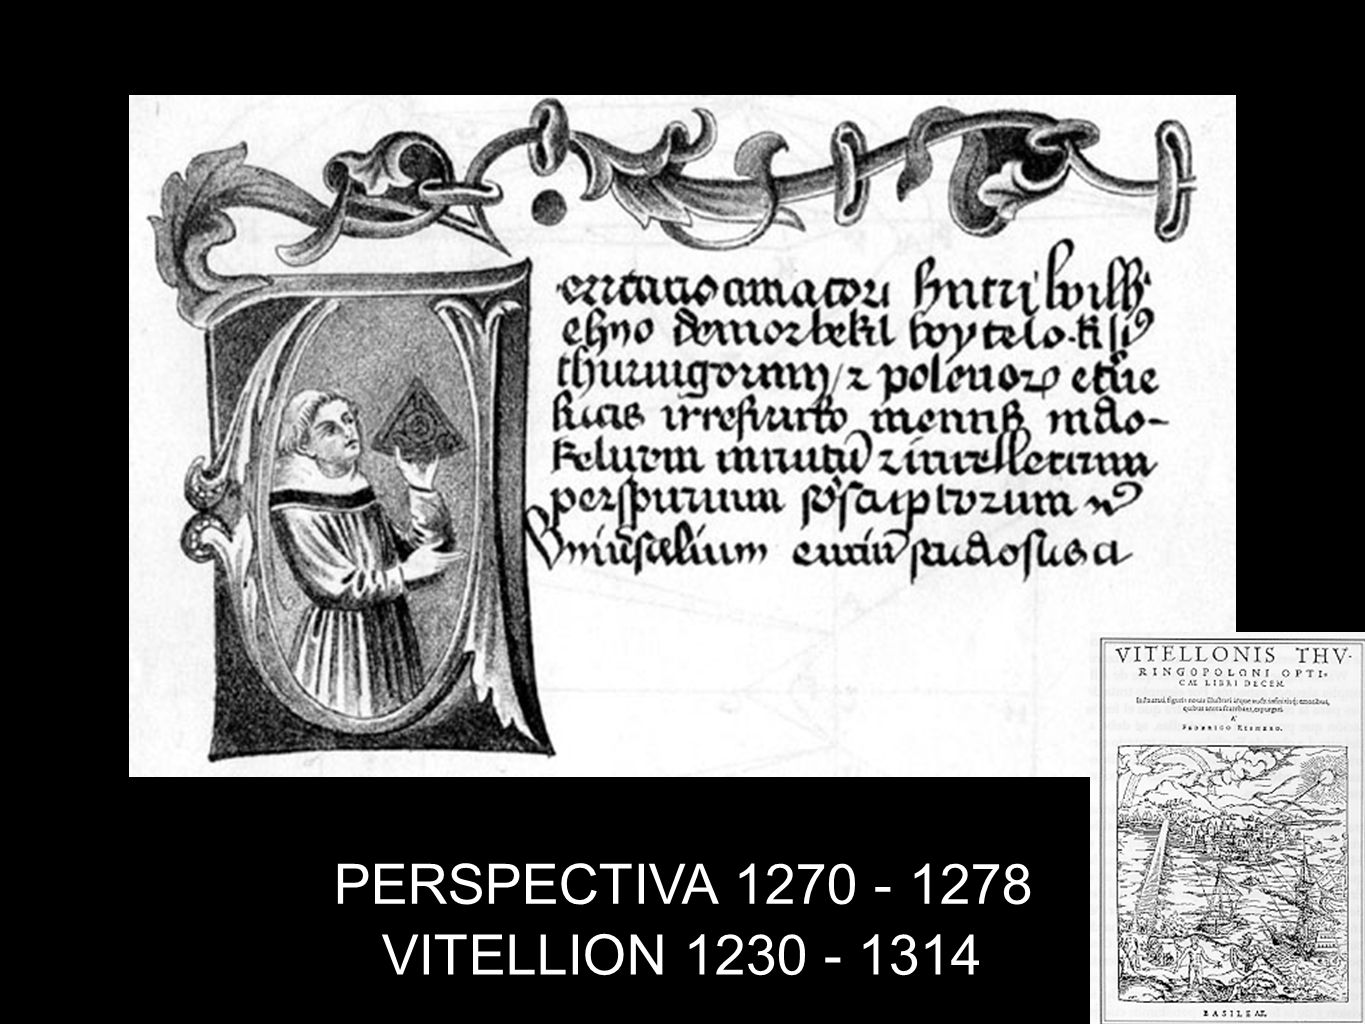 VITELLION 1230 - 1314 PERSPECTIVA 1270 - 1278